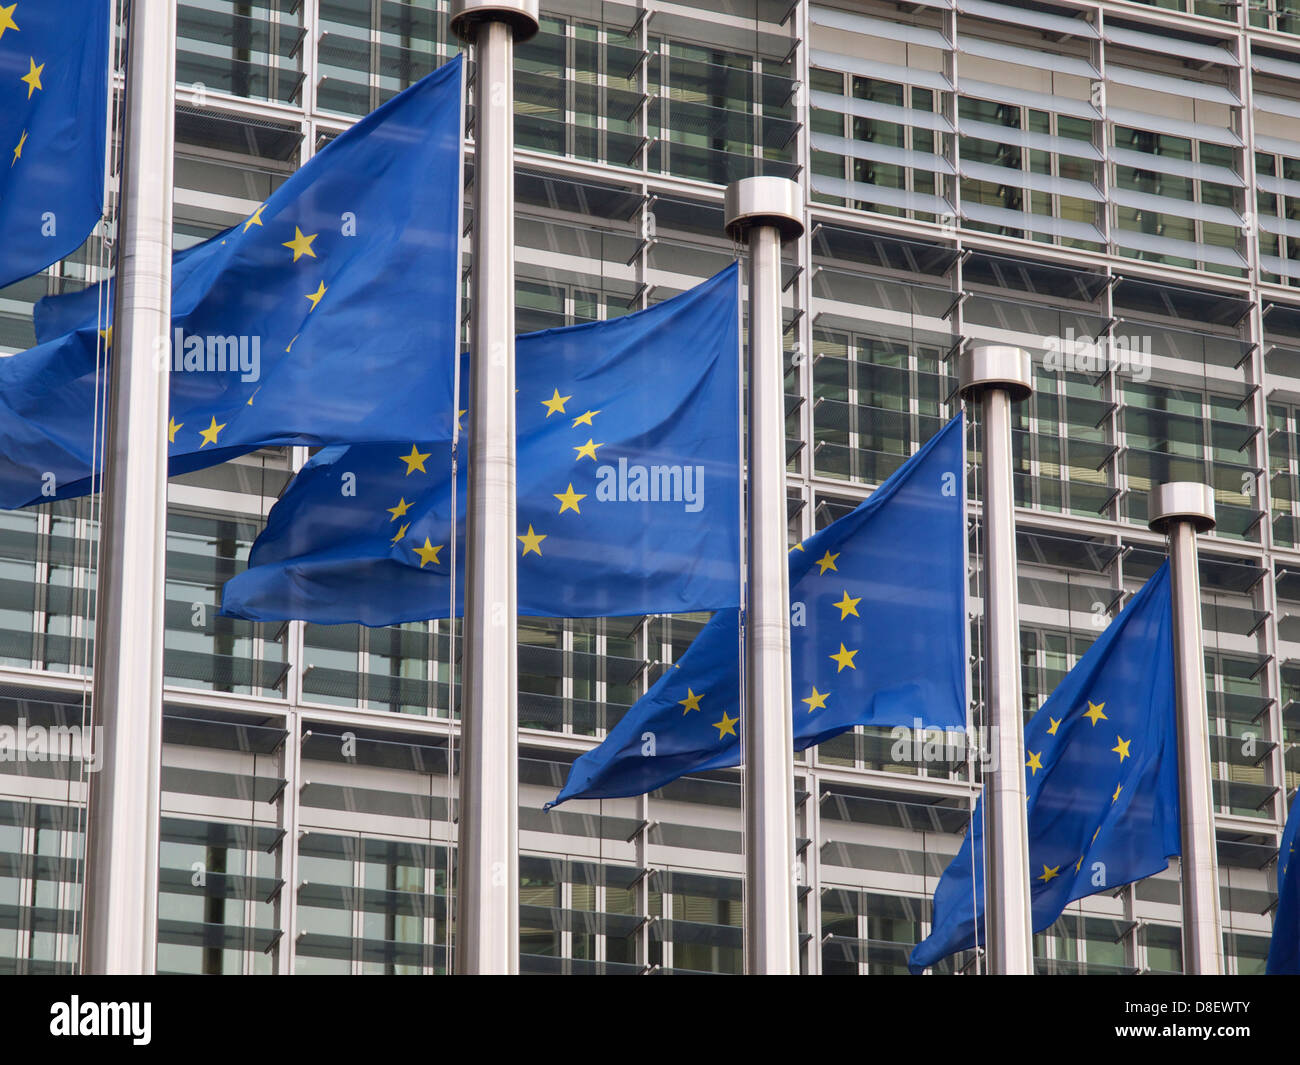 European Union flags in front of the Berlaymont building of the European Commission in Brussels, Belgium - Stock Image